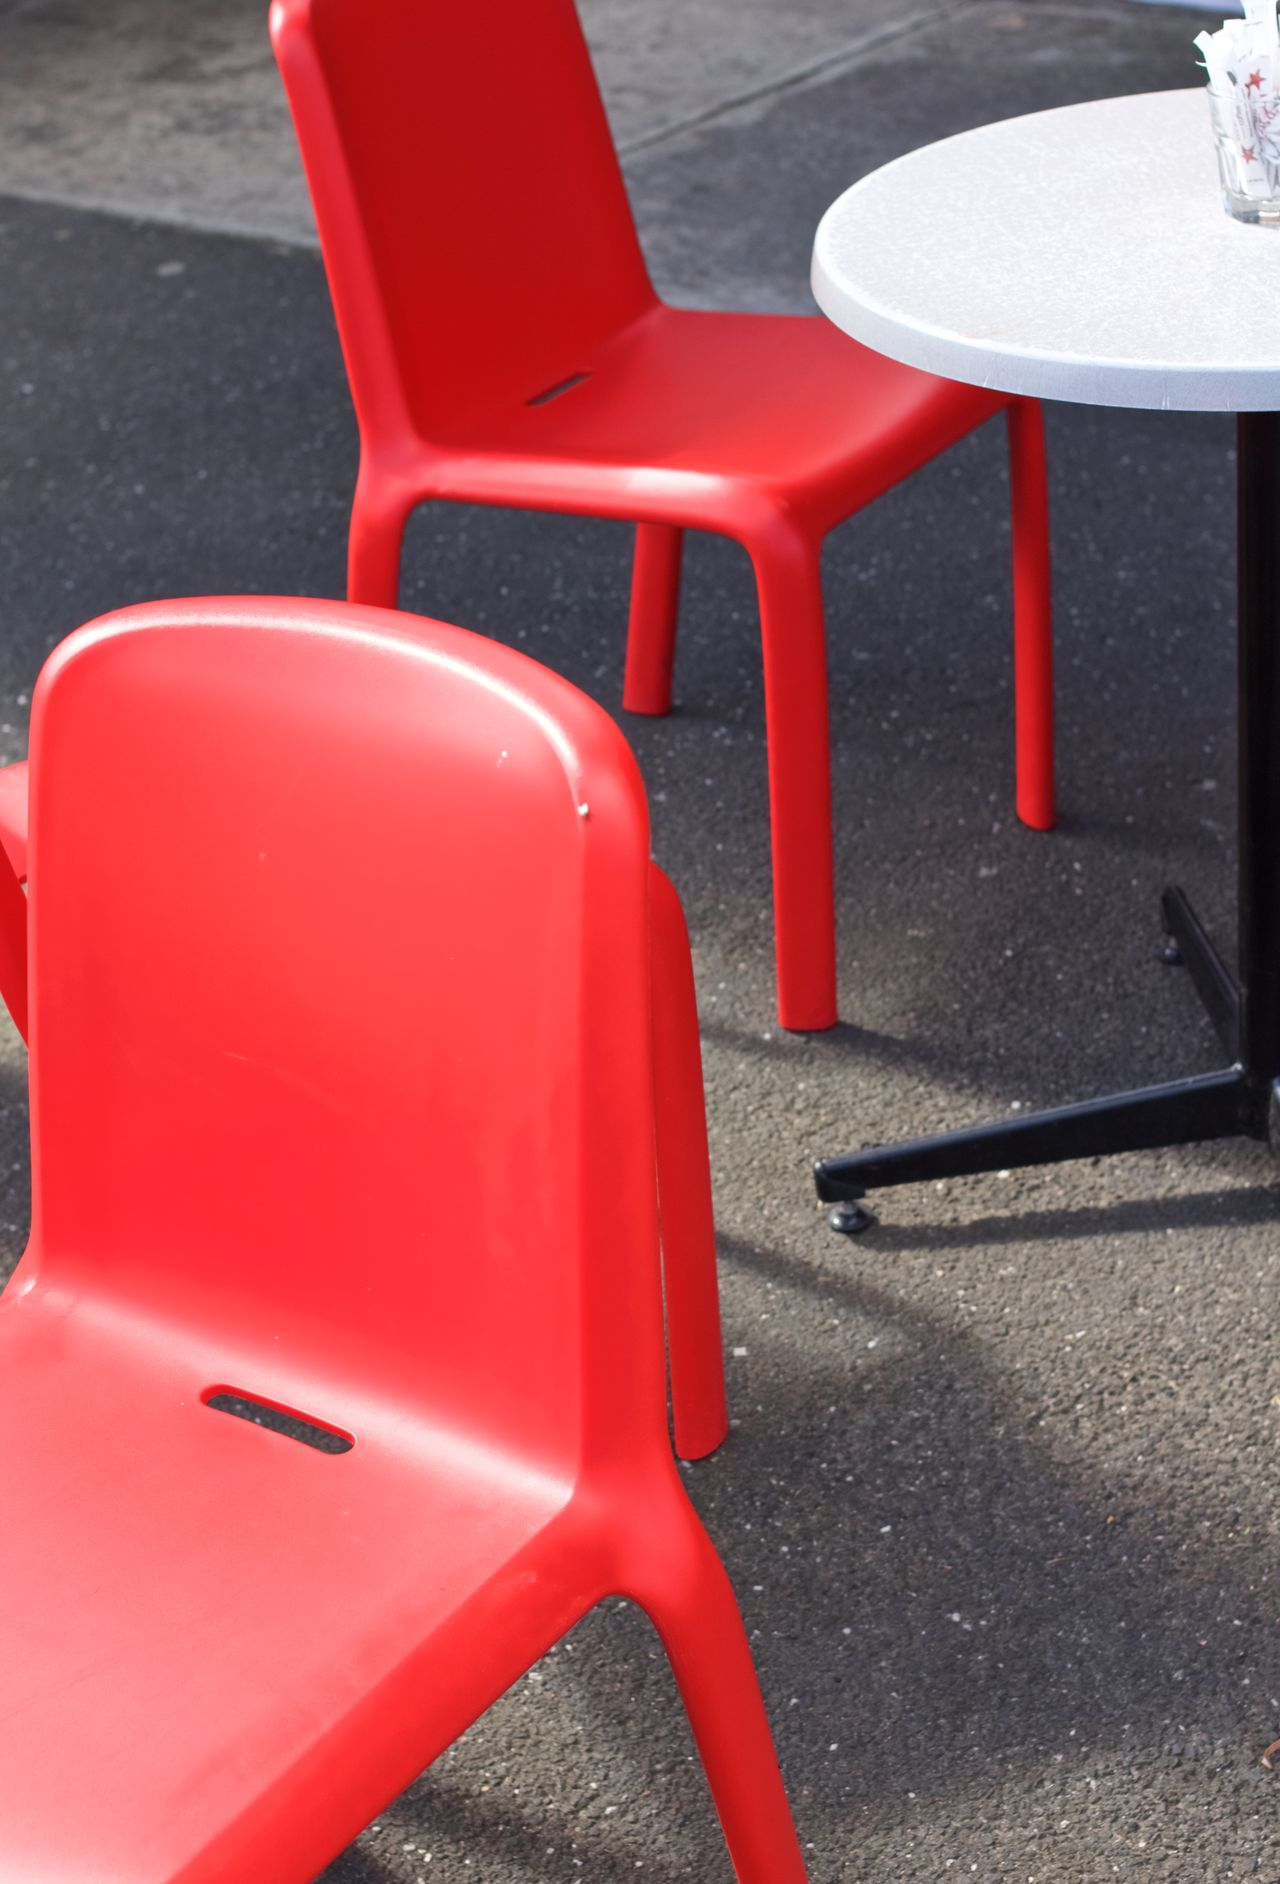 Cafe Cafe Seating Chairs Chairswithstories Outdoors Red Red Chair Red Chairs Red Chairs, Redchair White Table Table Table & Chairs Table And Chair